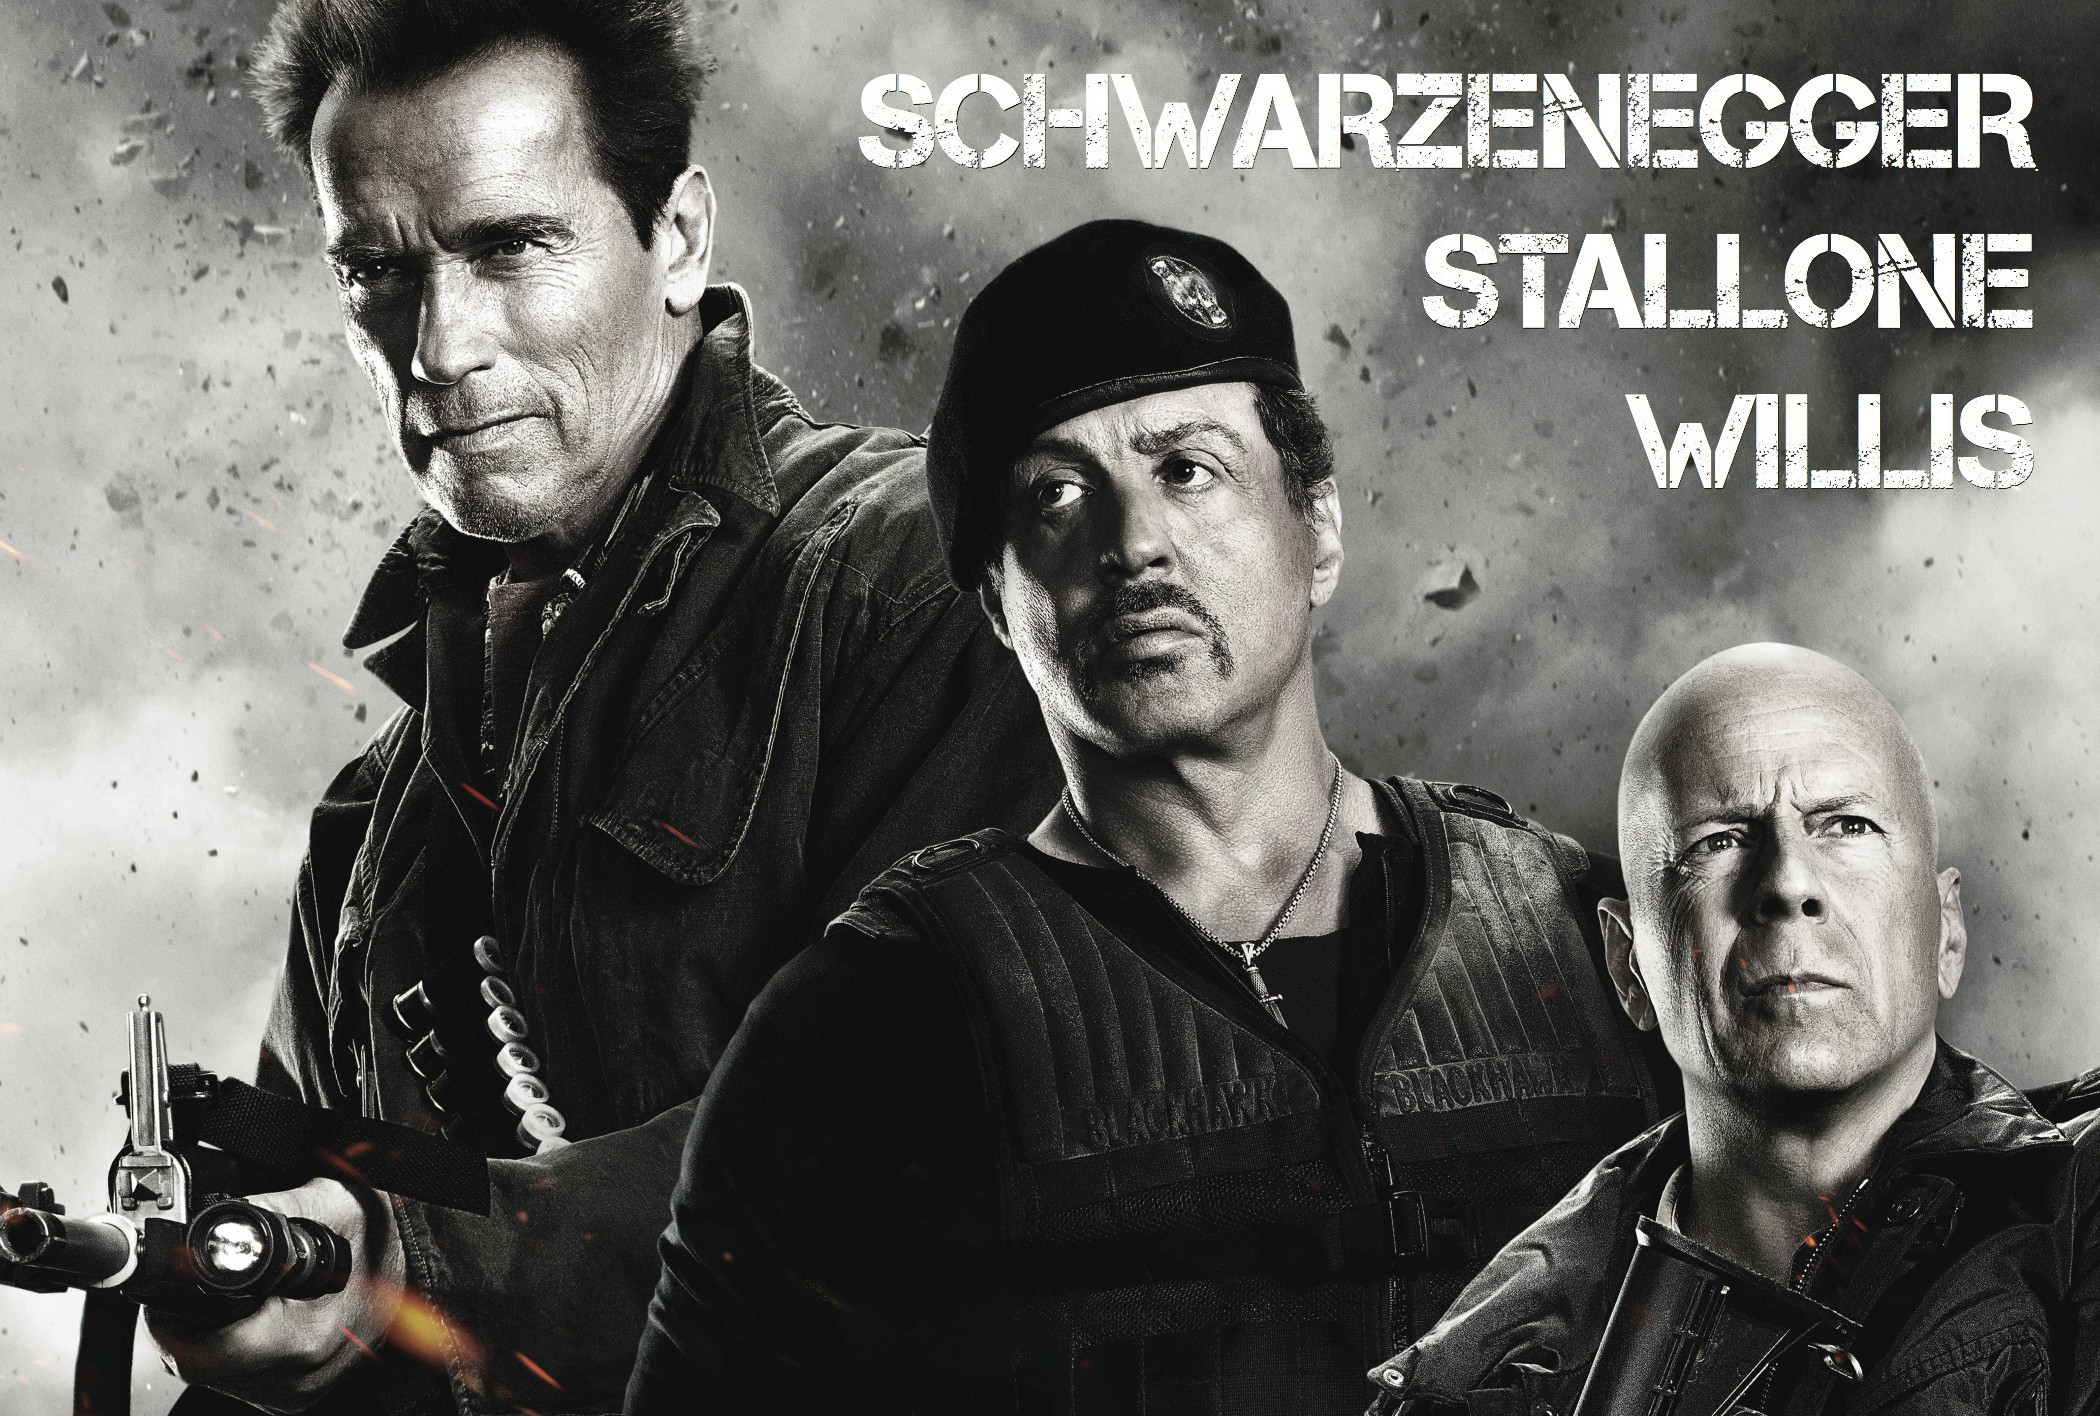 Sylvester Stallone In Expendables 2 Wallpapers: The Expendables 2 Full HD Wallpaper And Background Image